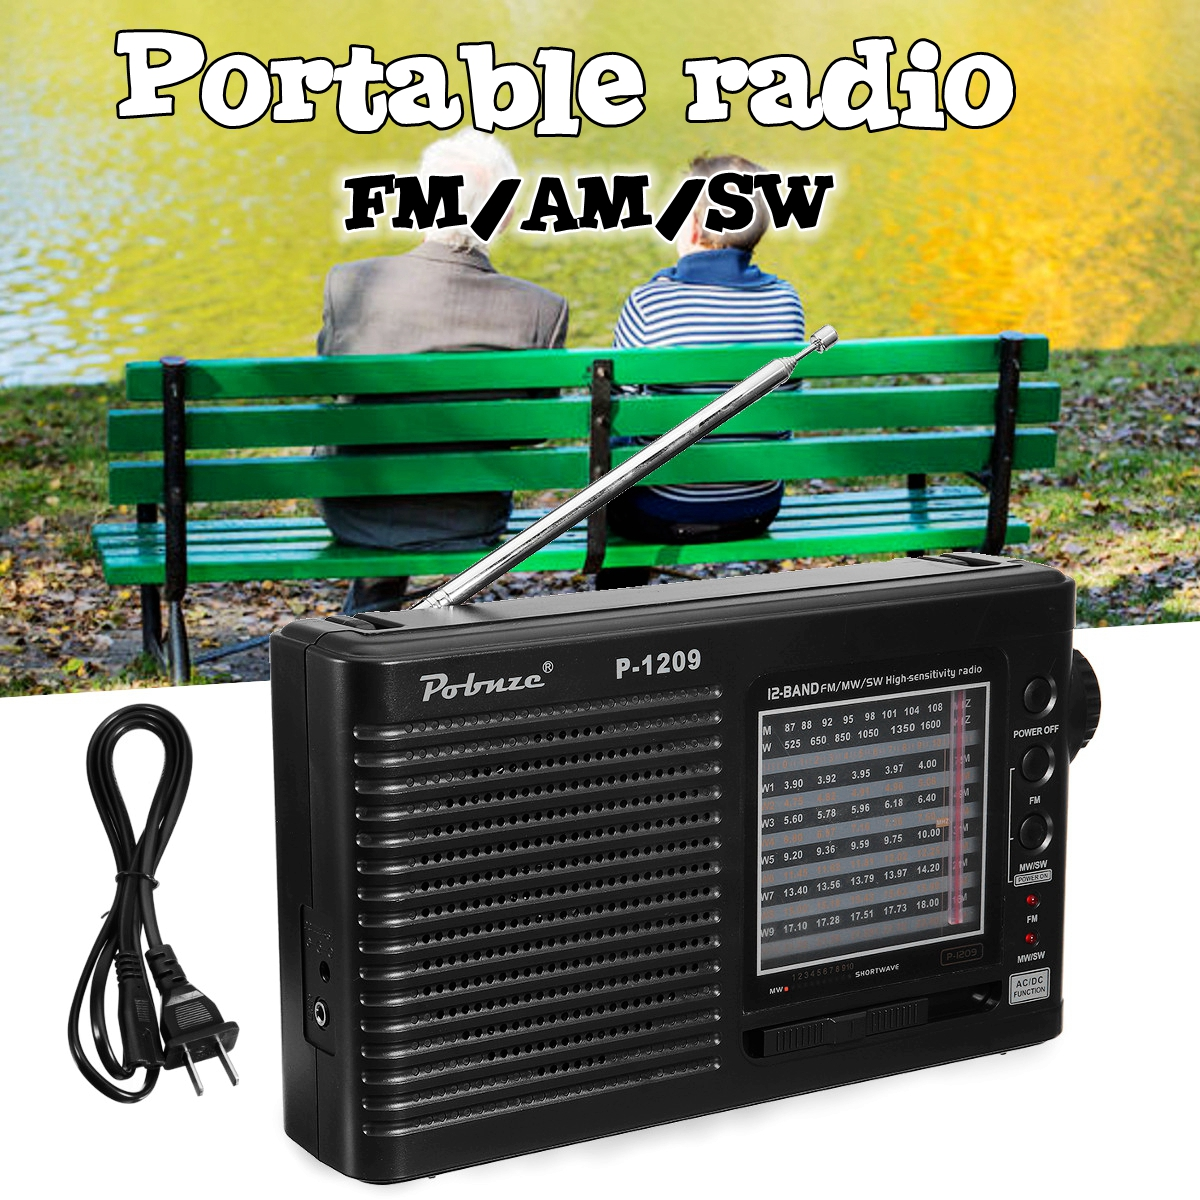 Portable Full World Bands Radio AM FM SW Receiver Speaker Telescopic Antenna Jack Radio Recorder tivdio v 116 fm mw sw dsp shortwave transistor radio receiver multiband mp3 player sleep timer alarm clock f9206a